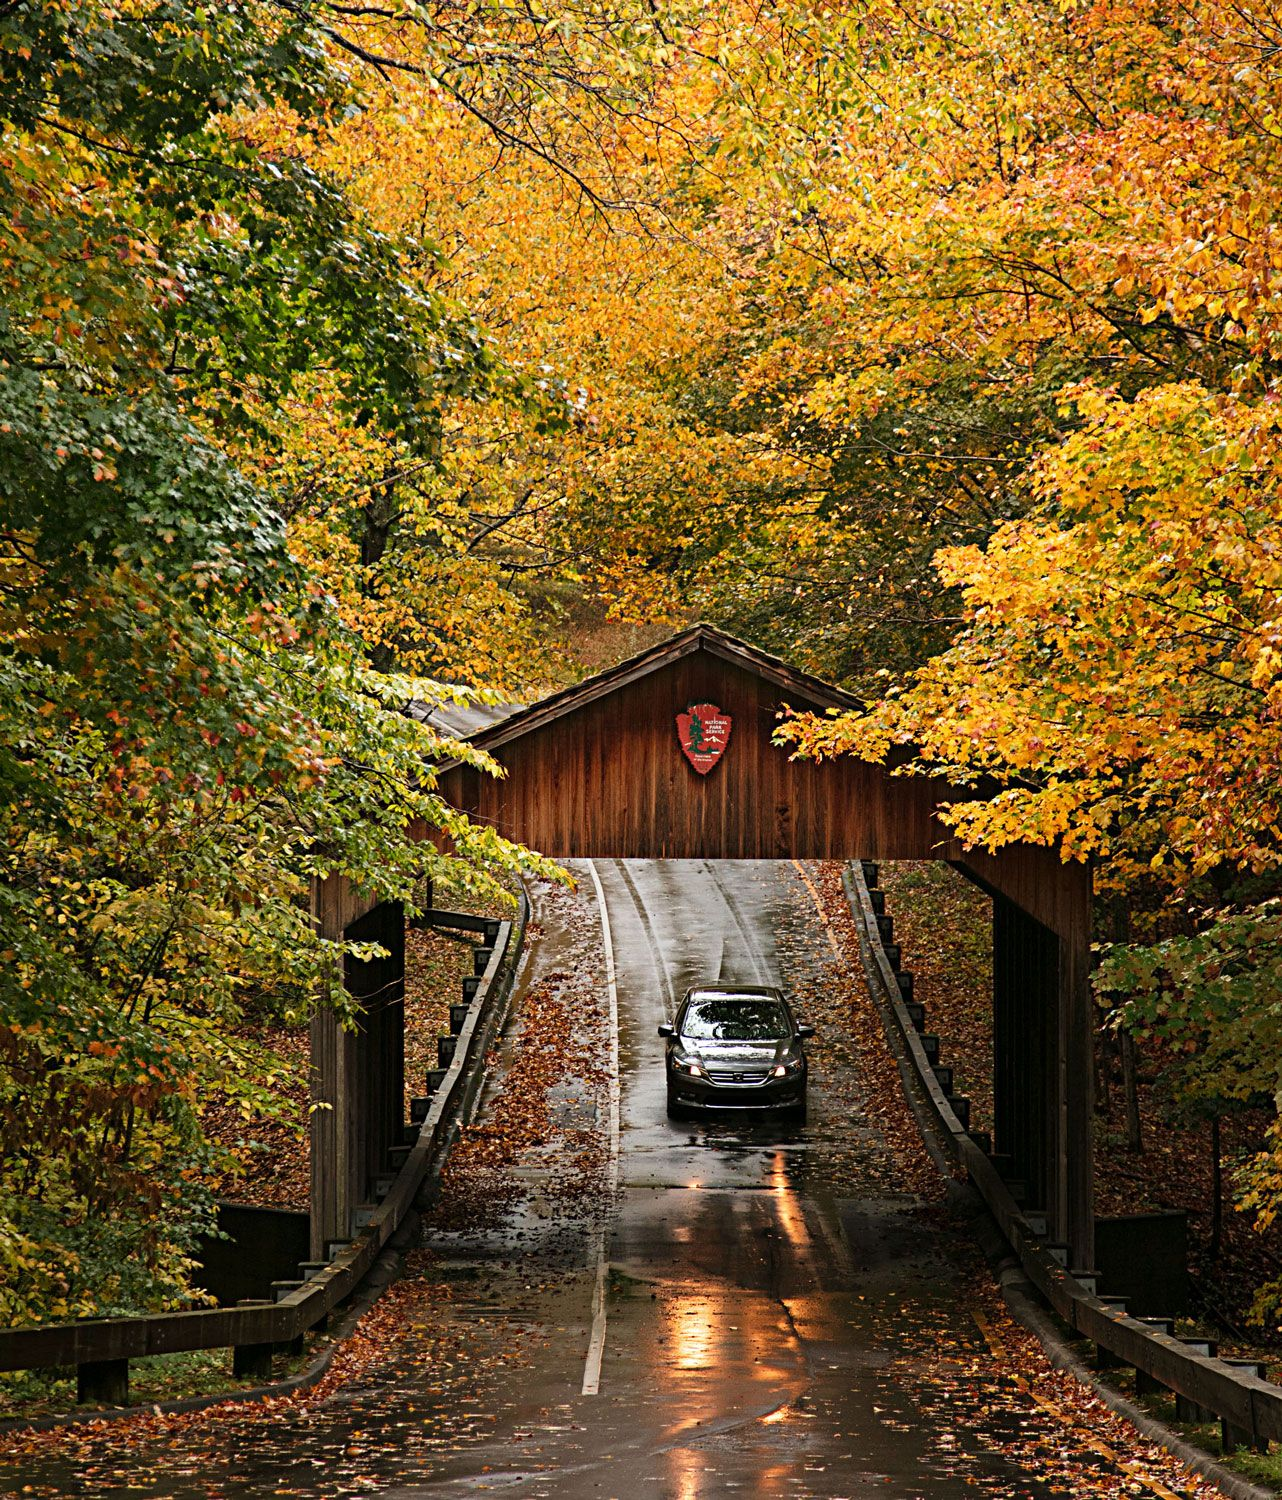 The Ultimate Fall Road Trip on Michigan's M-22